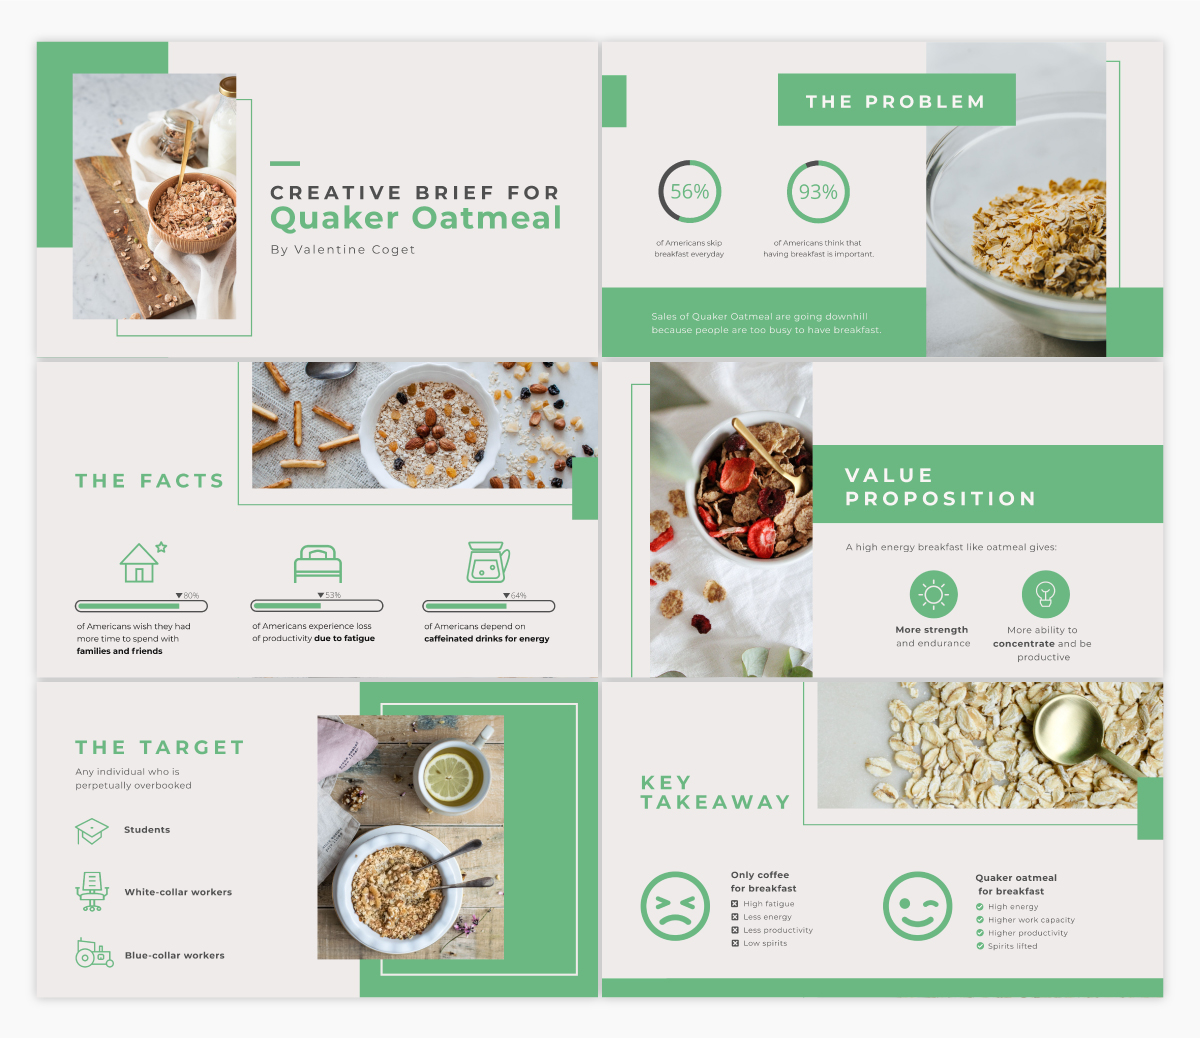 A creative brief presentation template available in Visme.